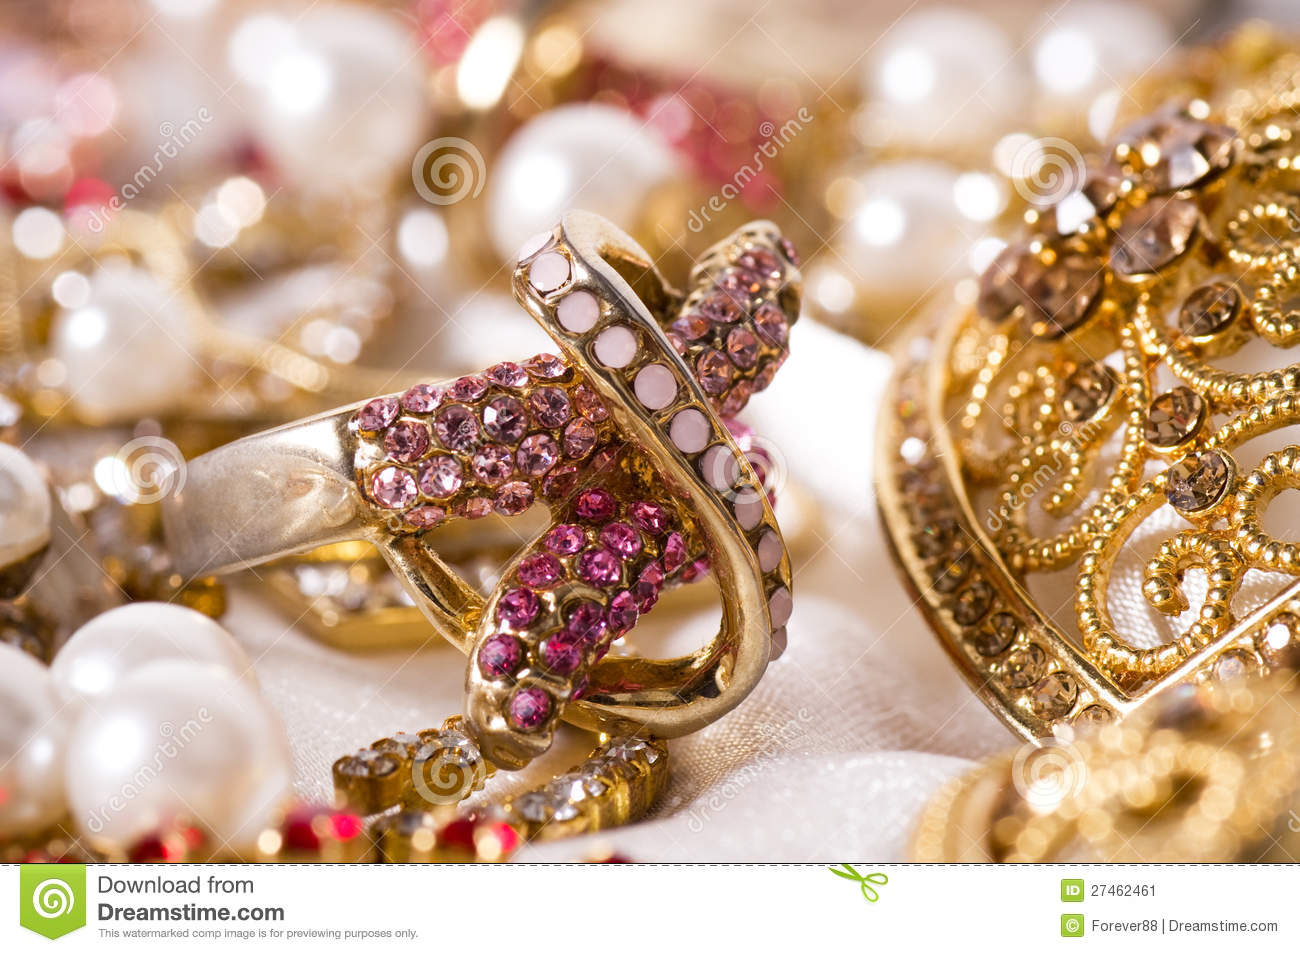 Beautiful jewelry stock image. Image of golden, glimmer - 27462461